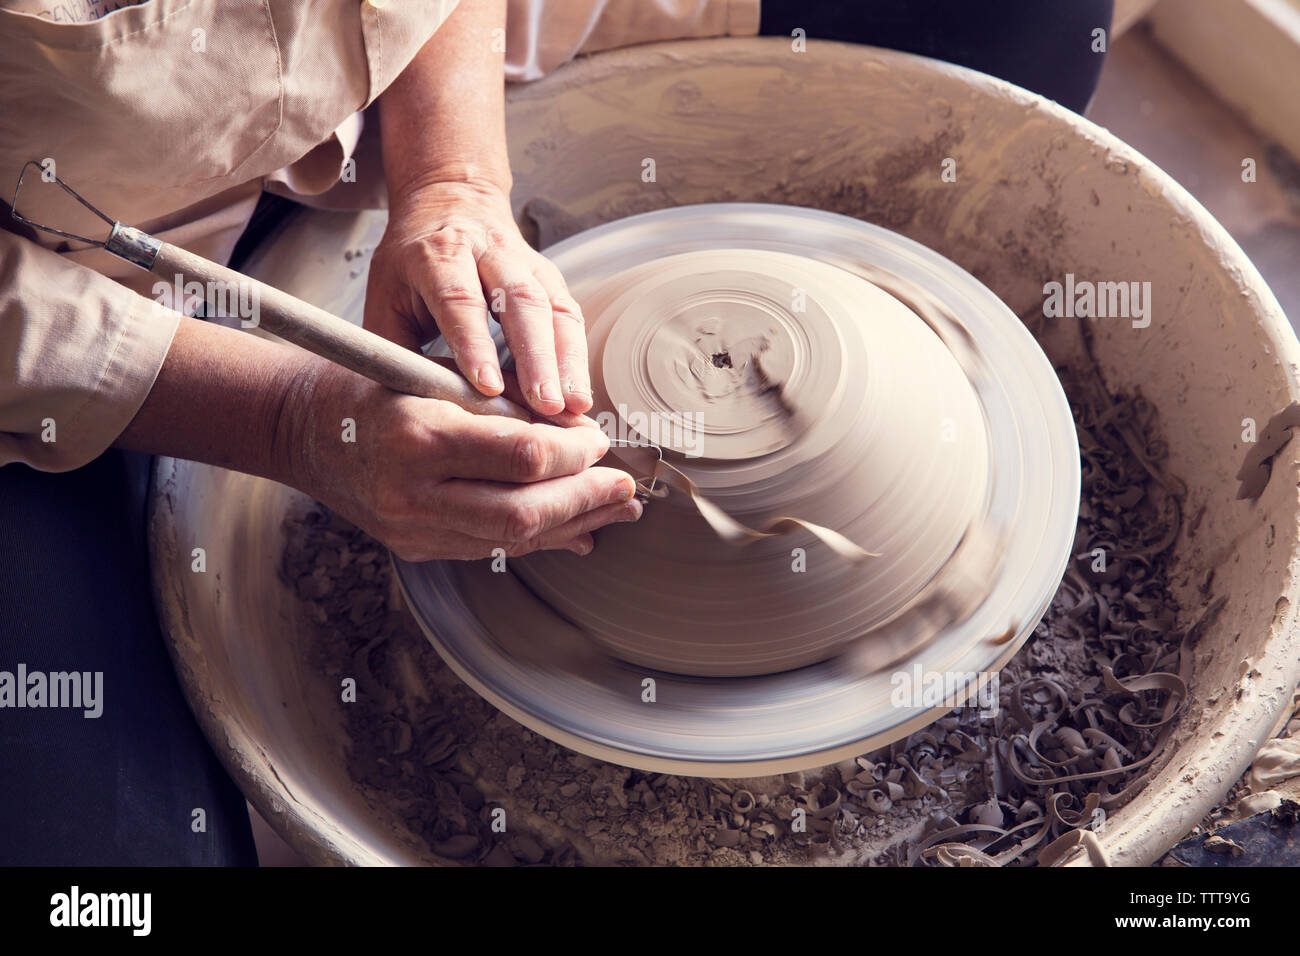 High angle view of woman molding shape to clay with work tool on pottery wheel - Stock Image